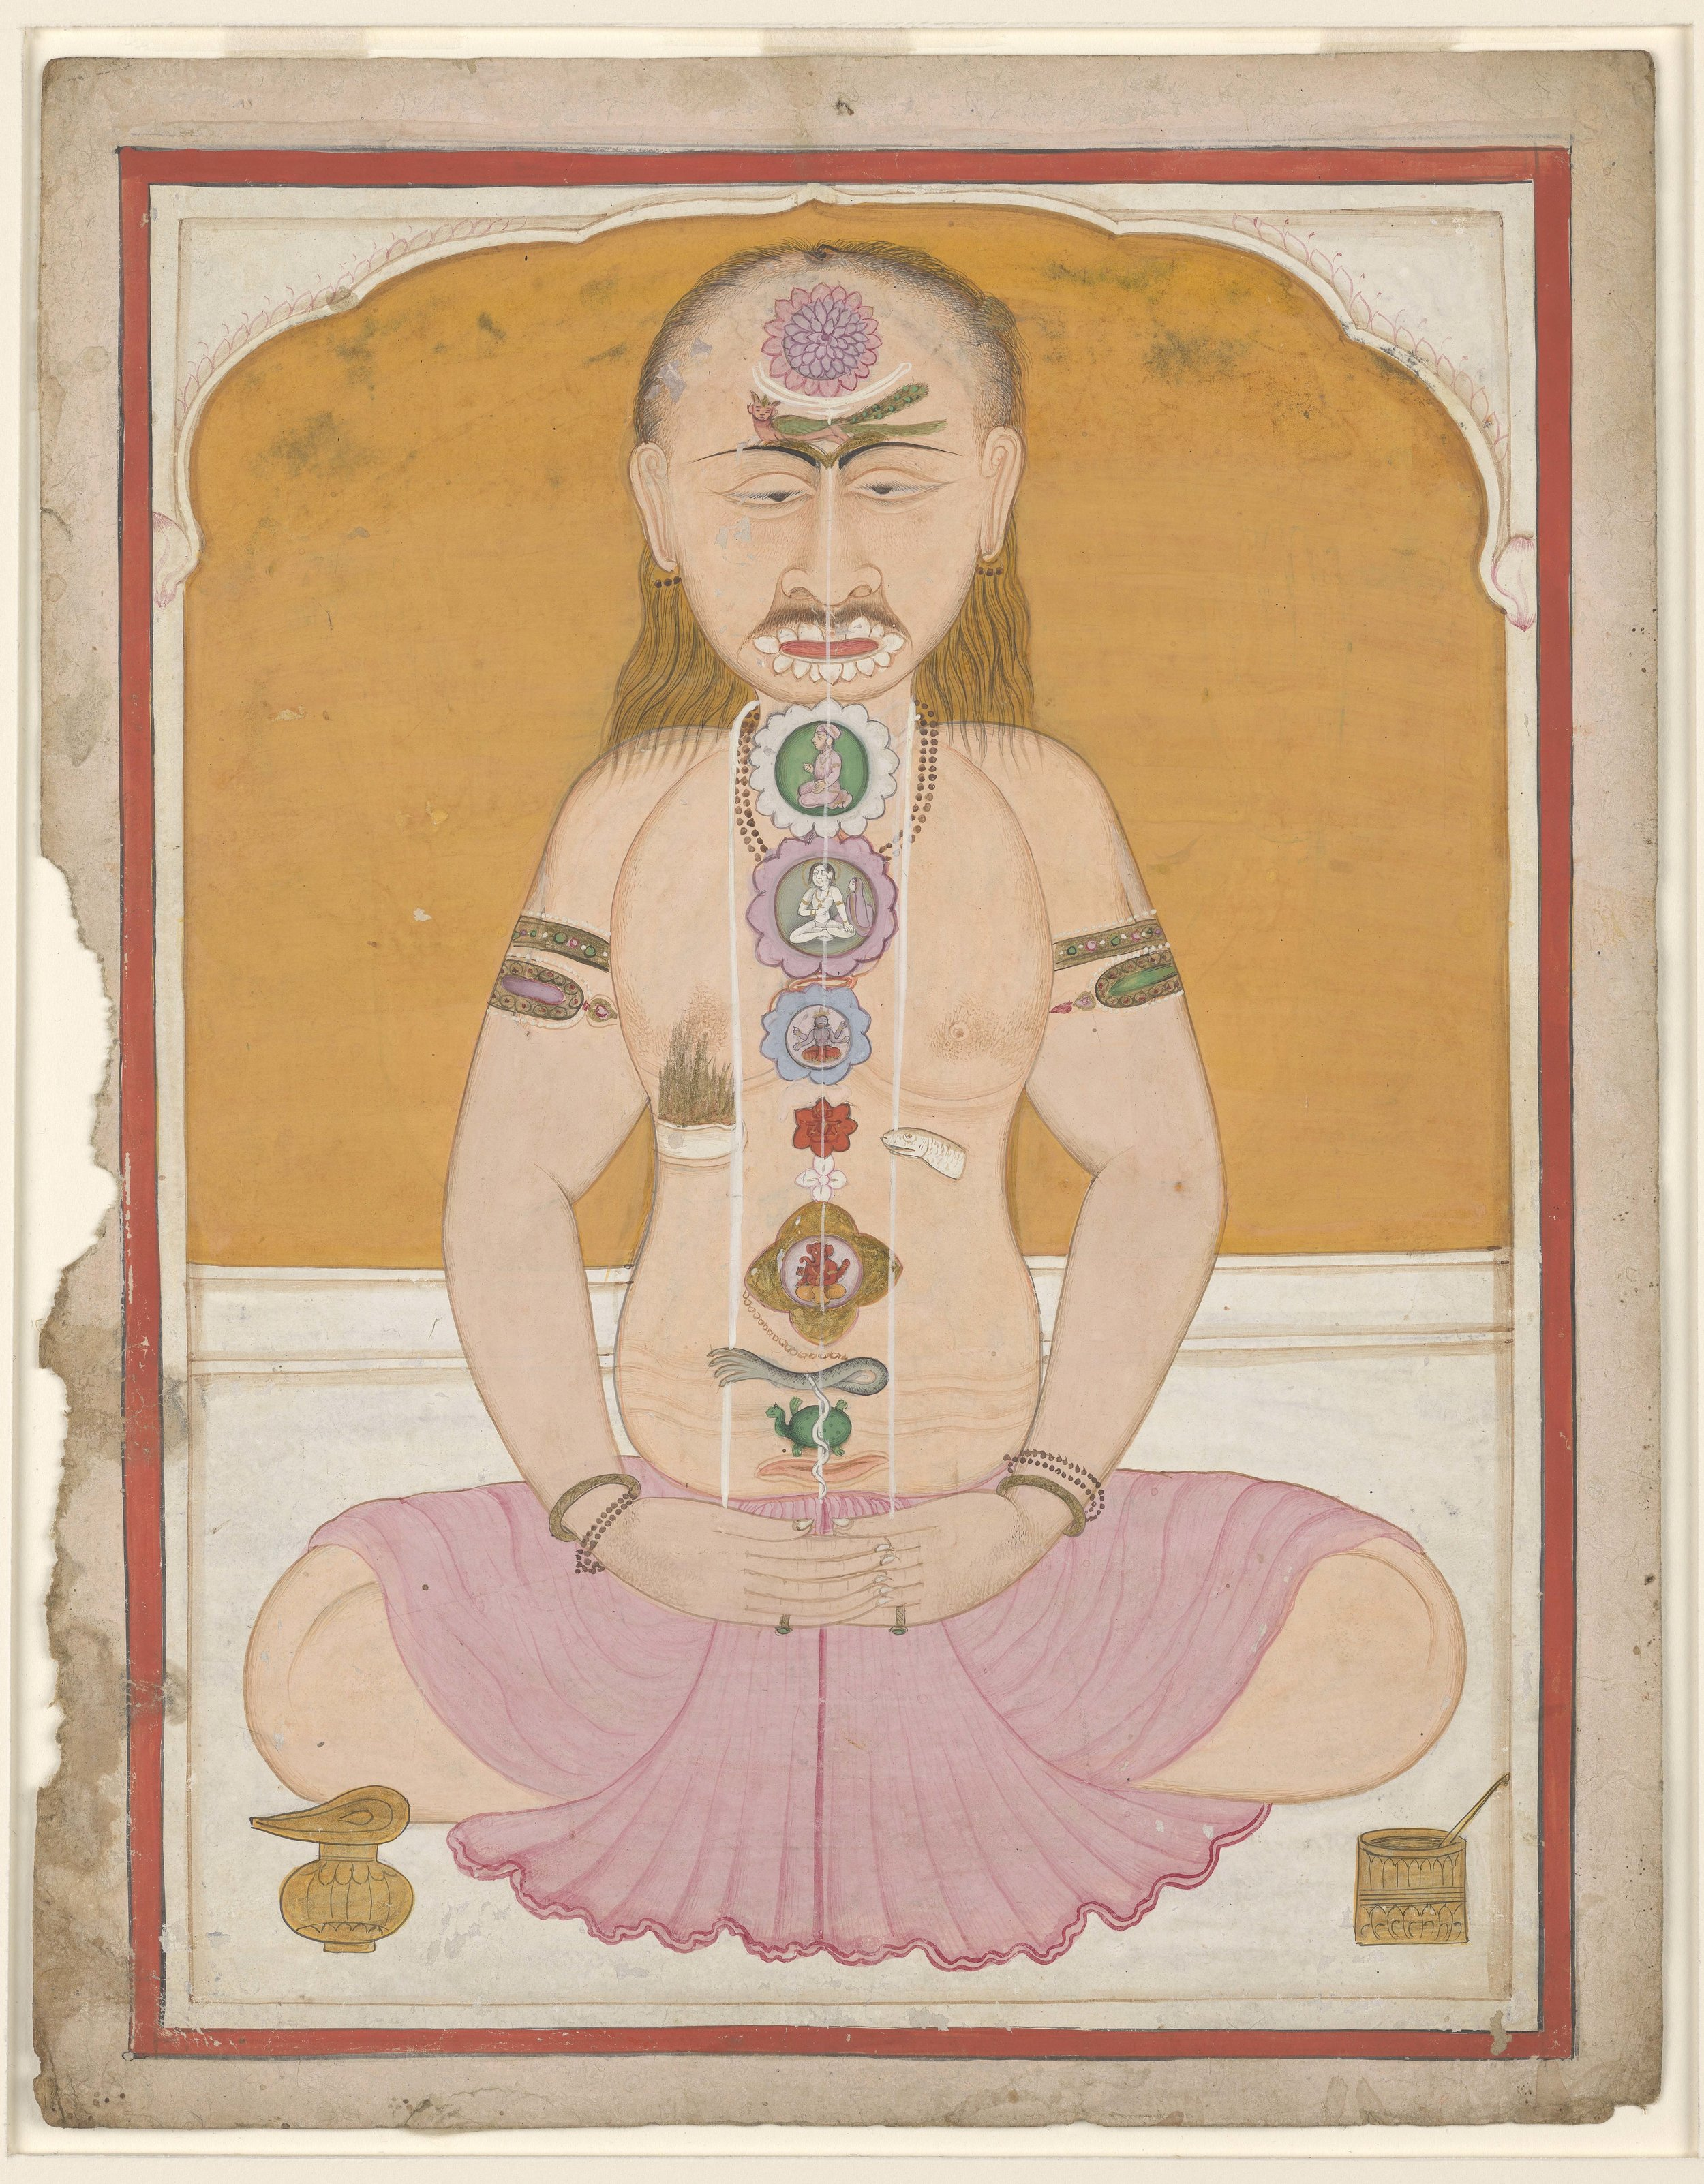 A meditator shown with chakras and kundalini, gouache on paper, 19th century